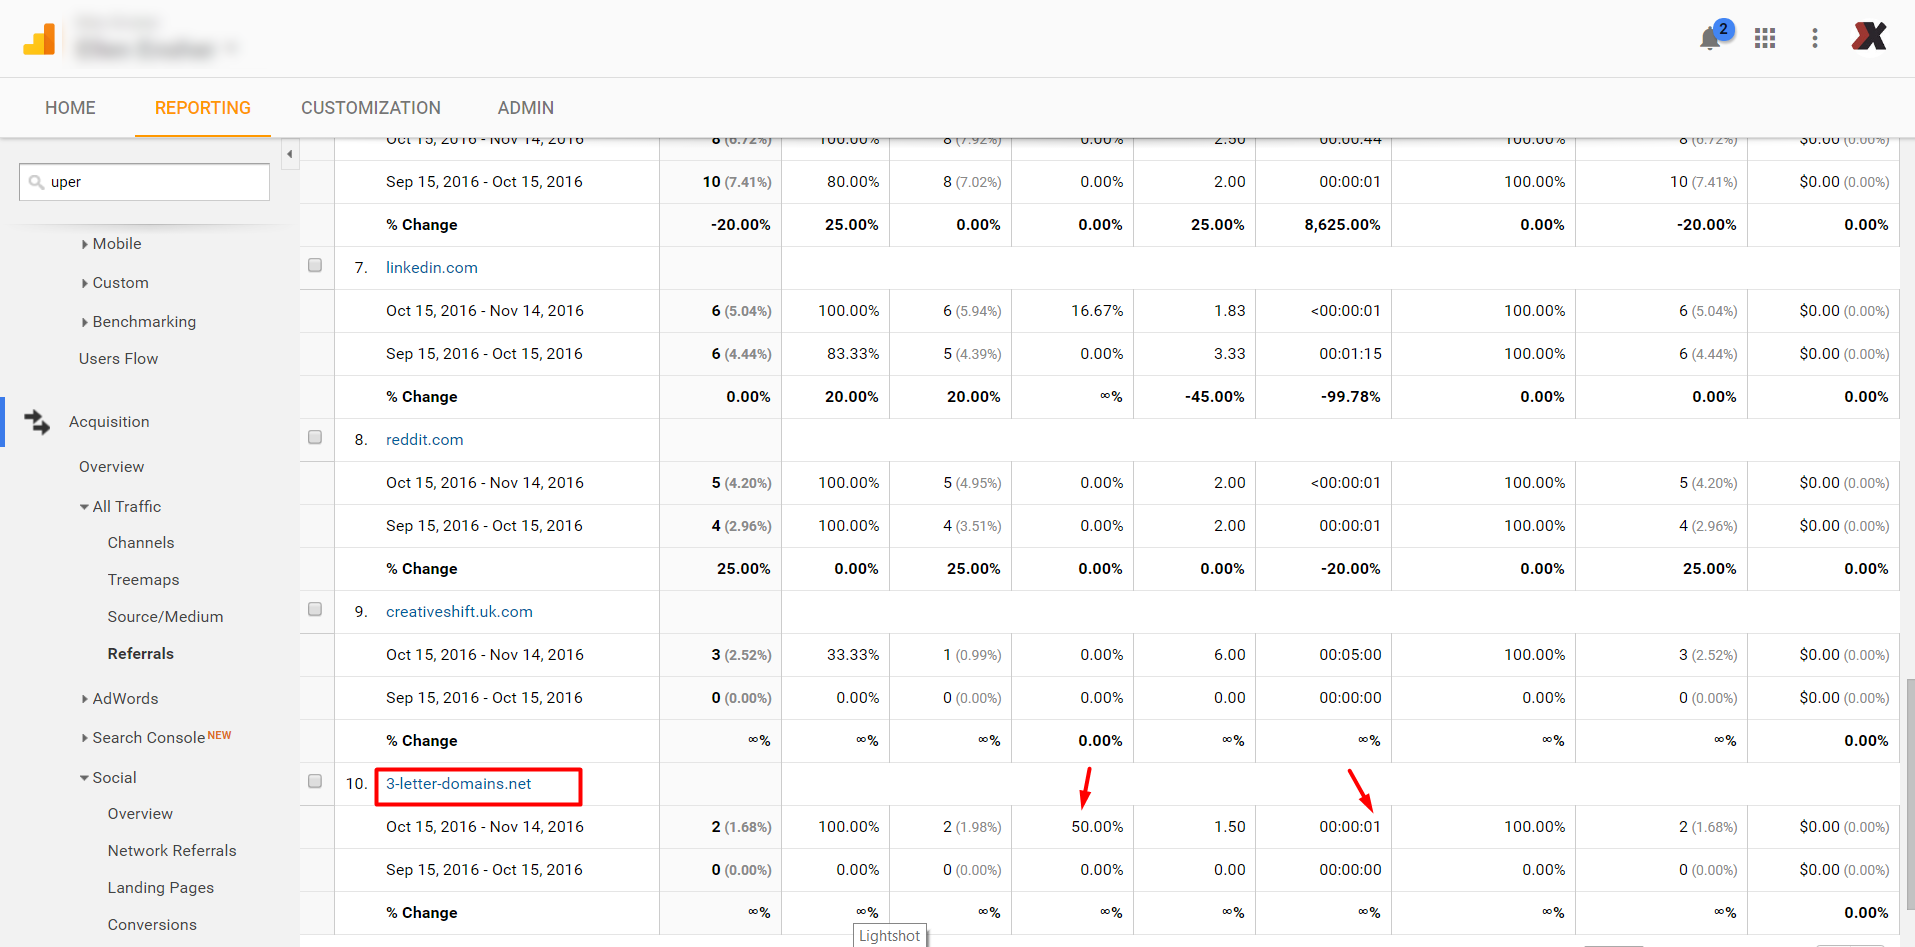 google analytics Filter Spam Referral Traffic acquition